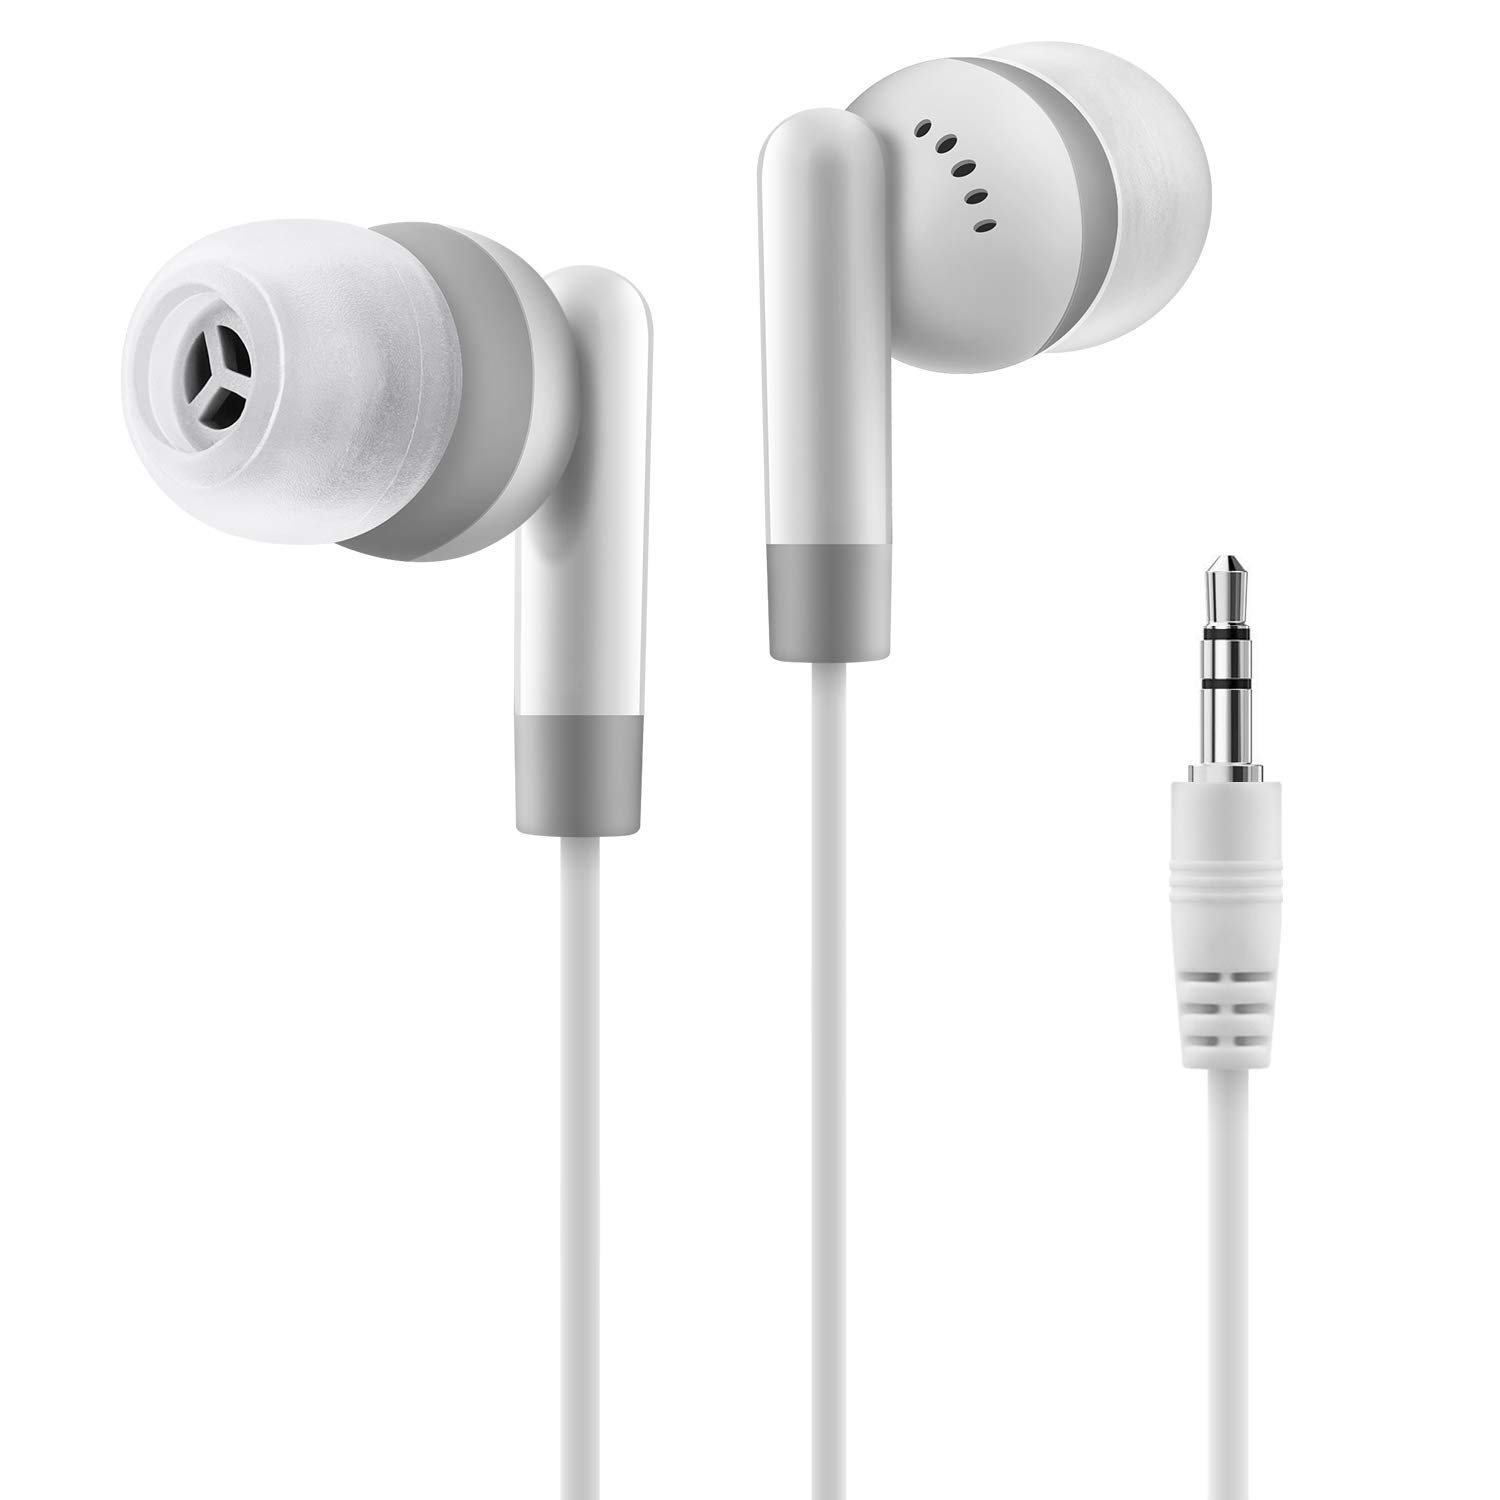 in-Ear Headphones/Wired Earbuds with Remote and Microphone